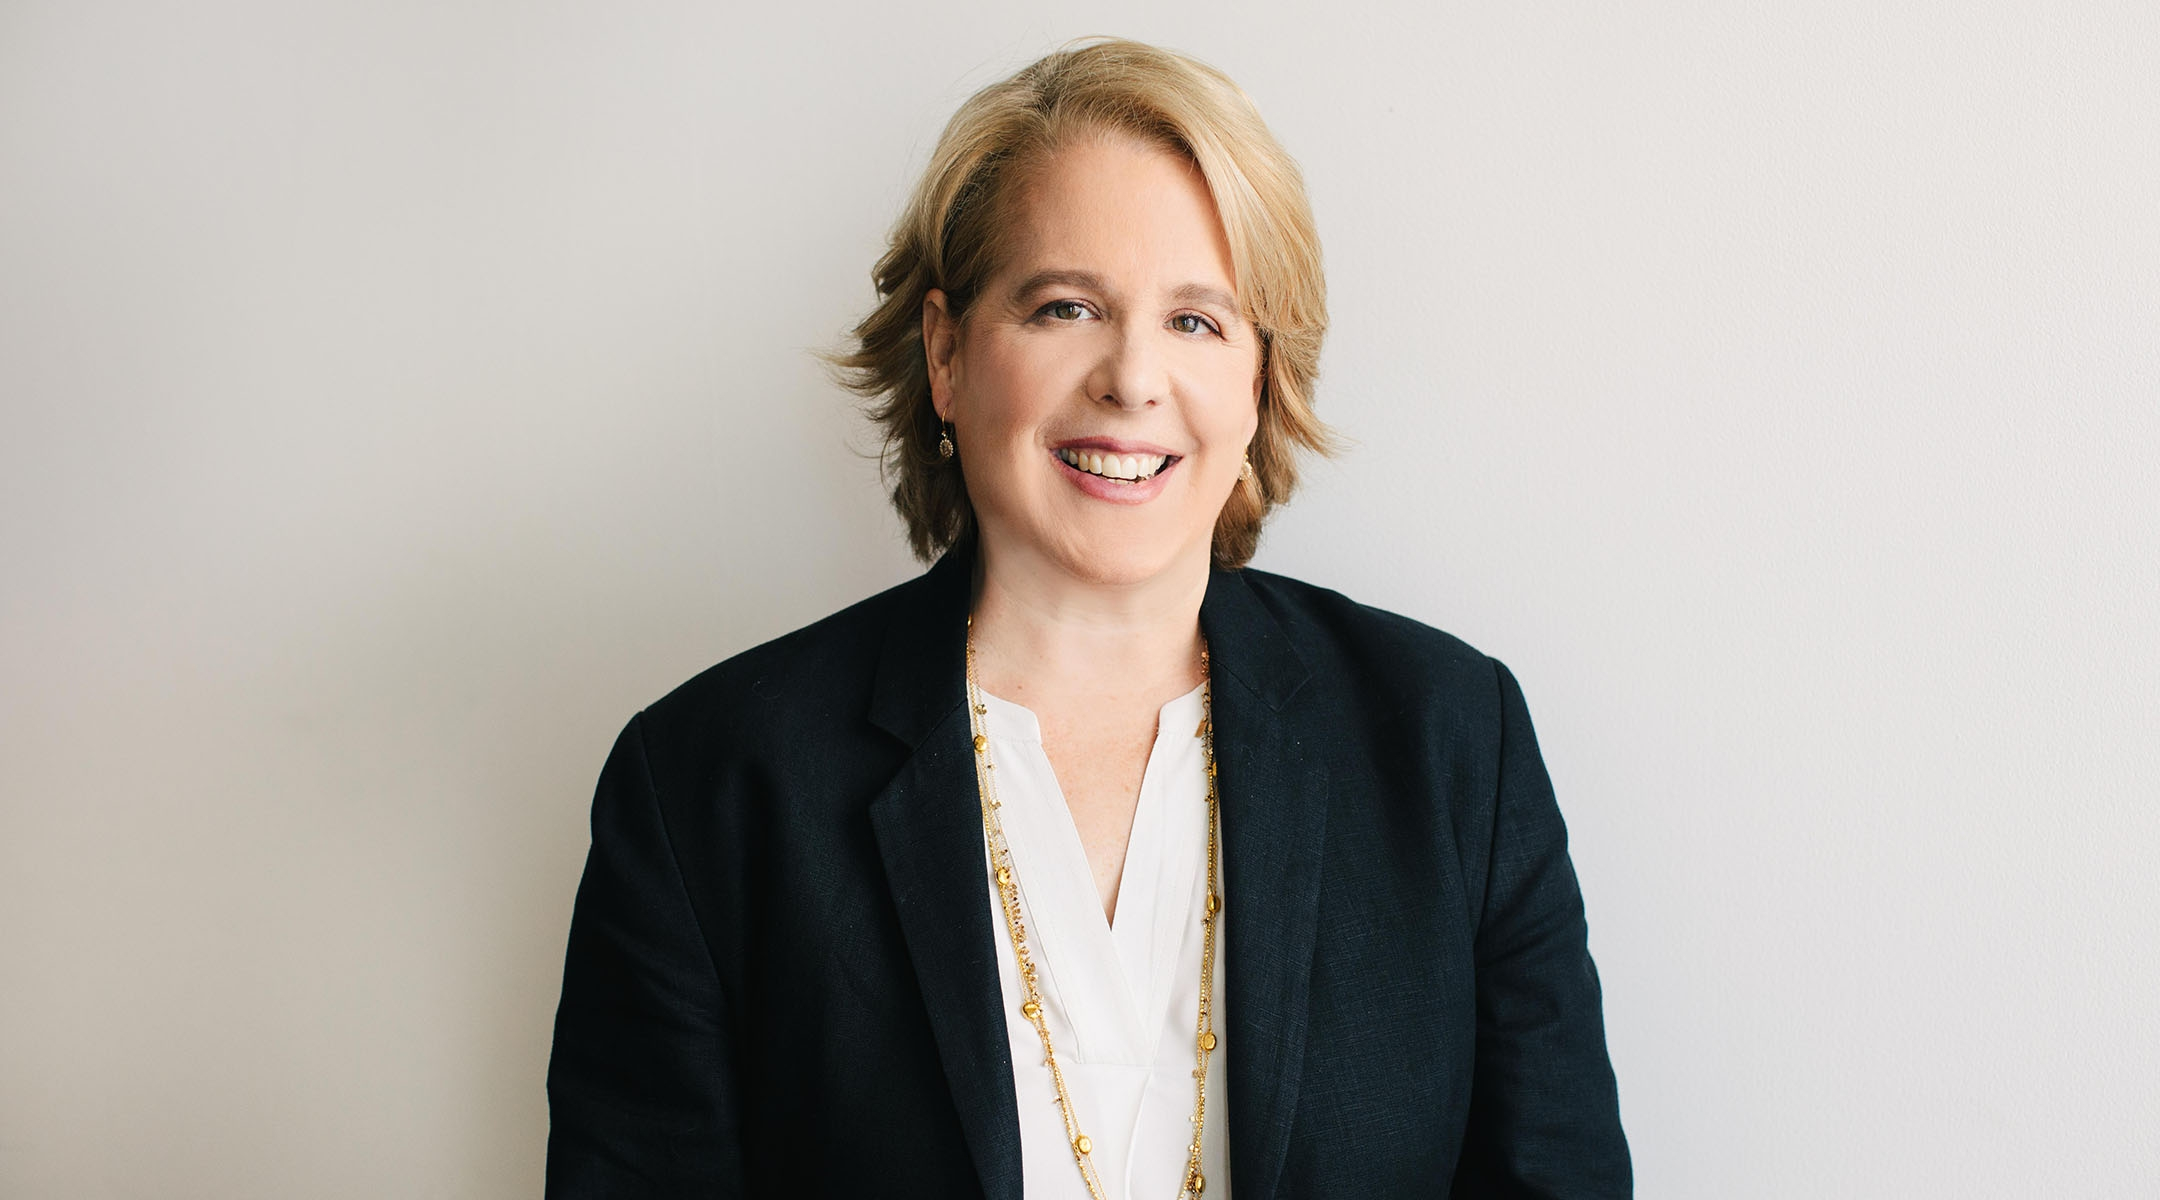 Roberta Kaplan is crushing white supremacists in court — and she wants America to start...